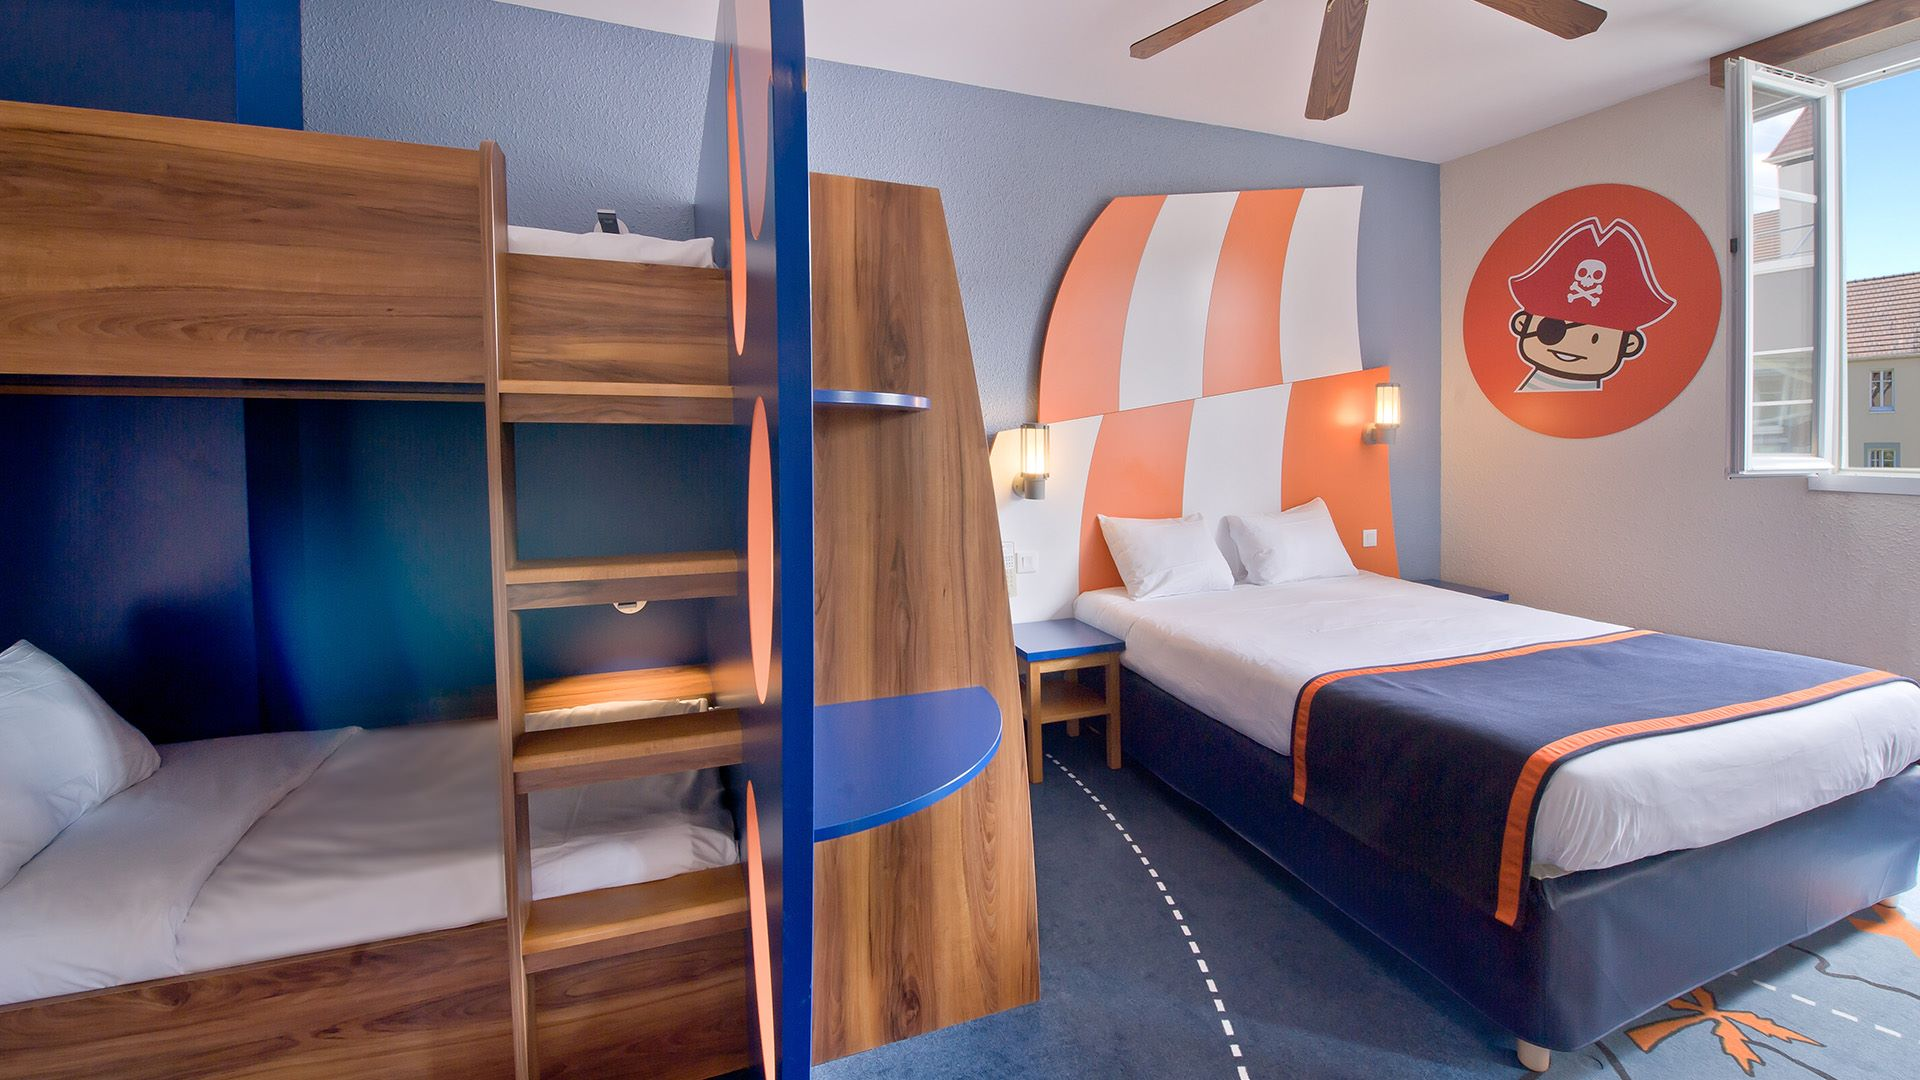 Hotels With Bunk Beds Near Disneyland